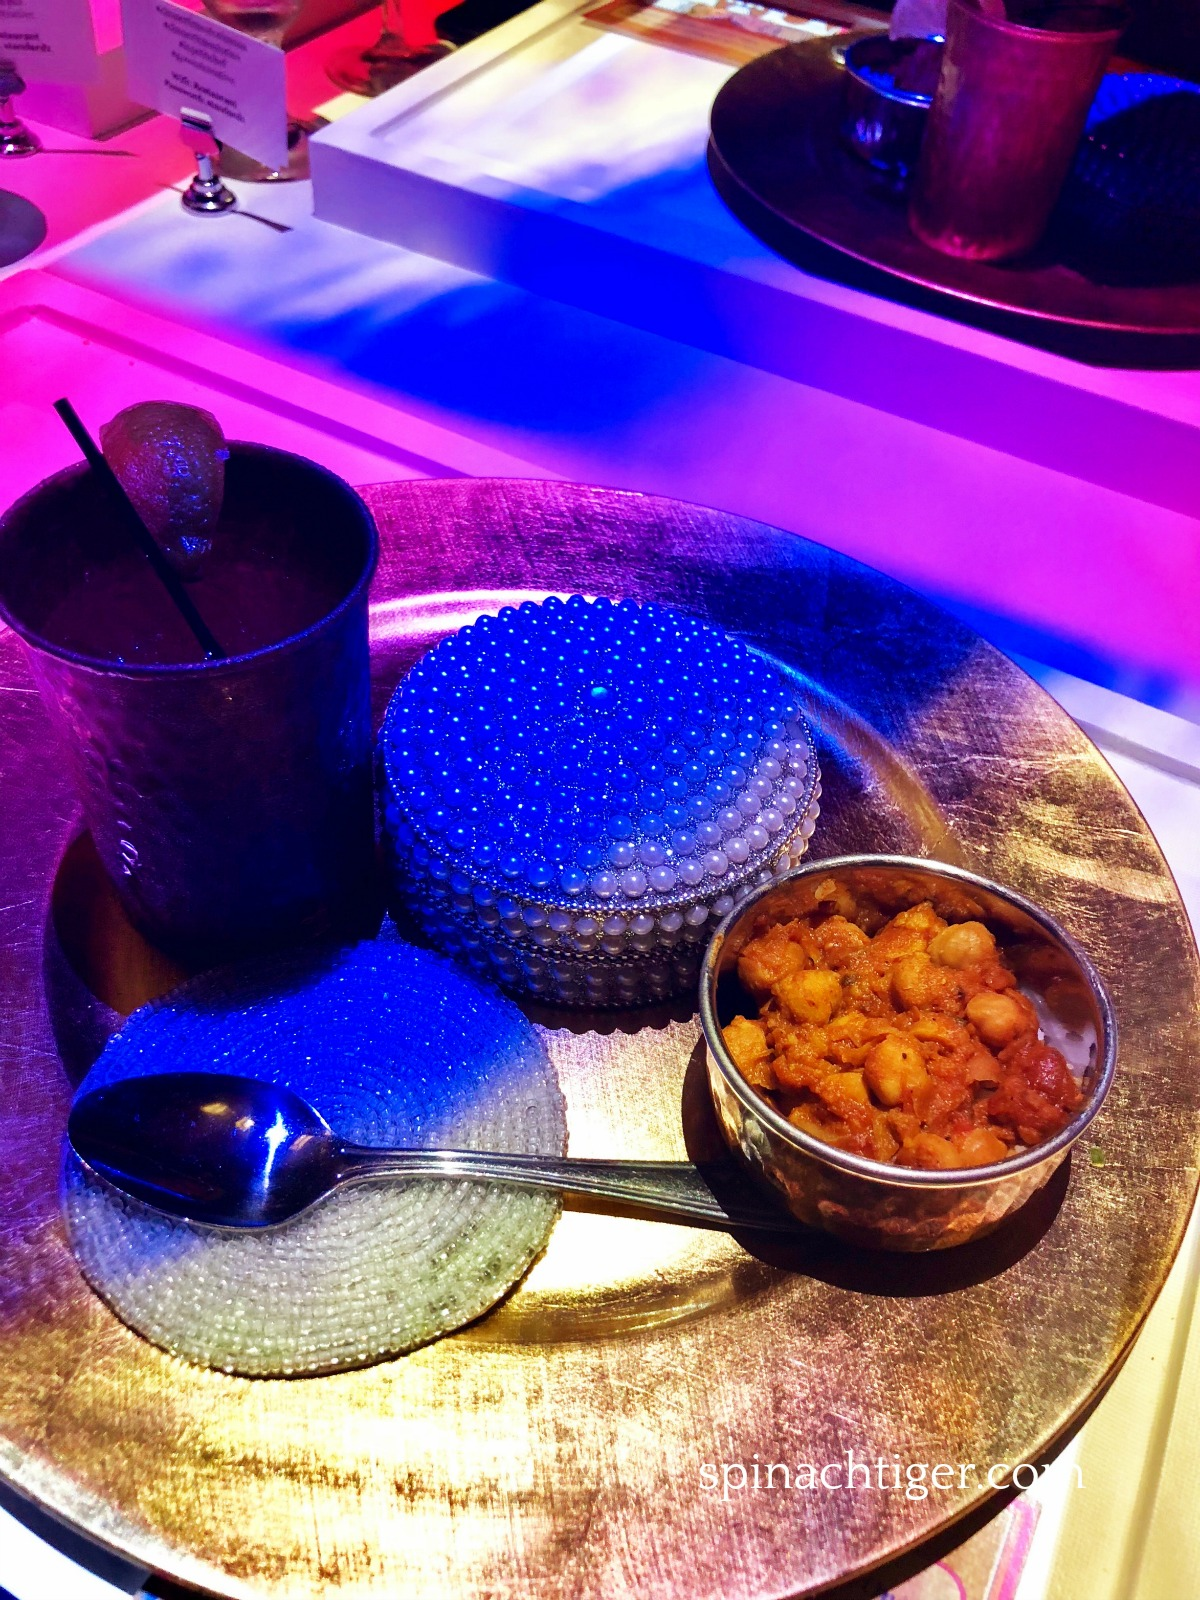 Chana Masala at Dinner Time Stories from Spinach Tiger